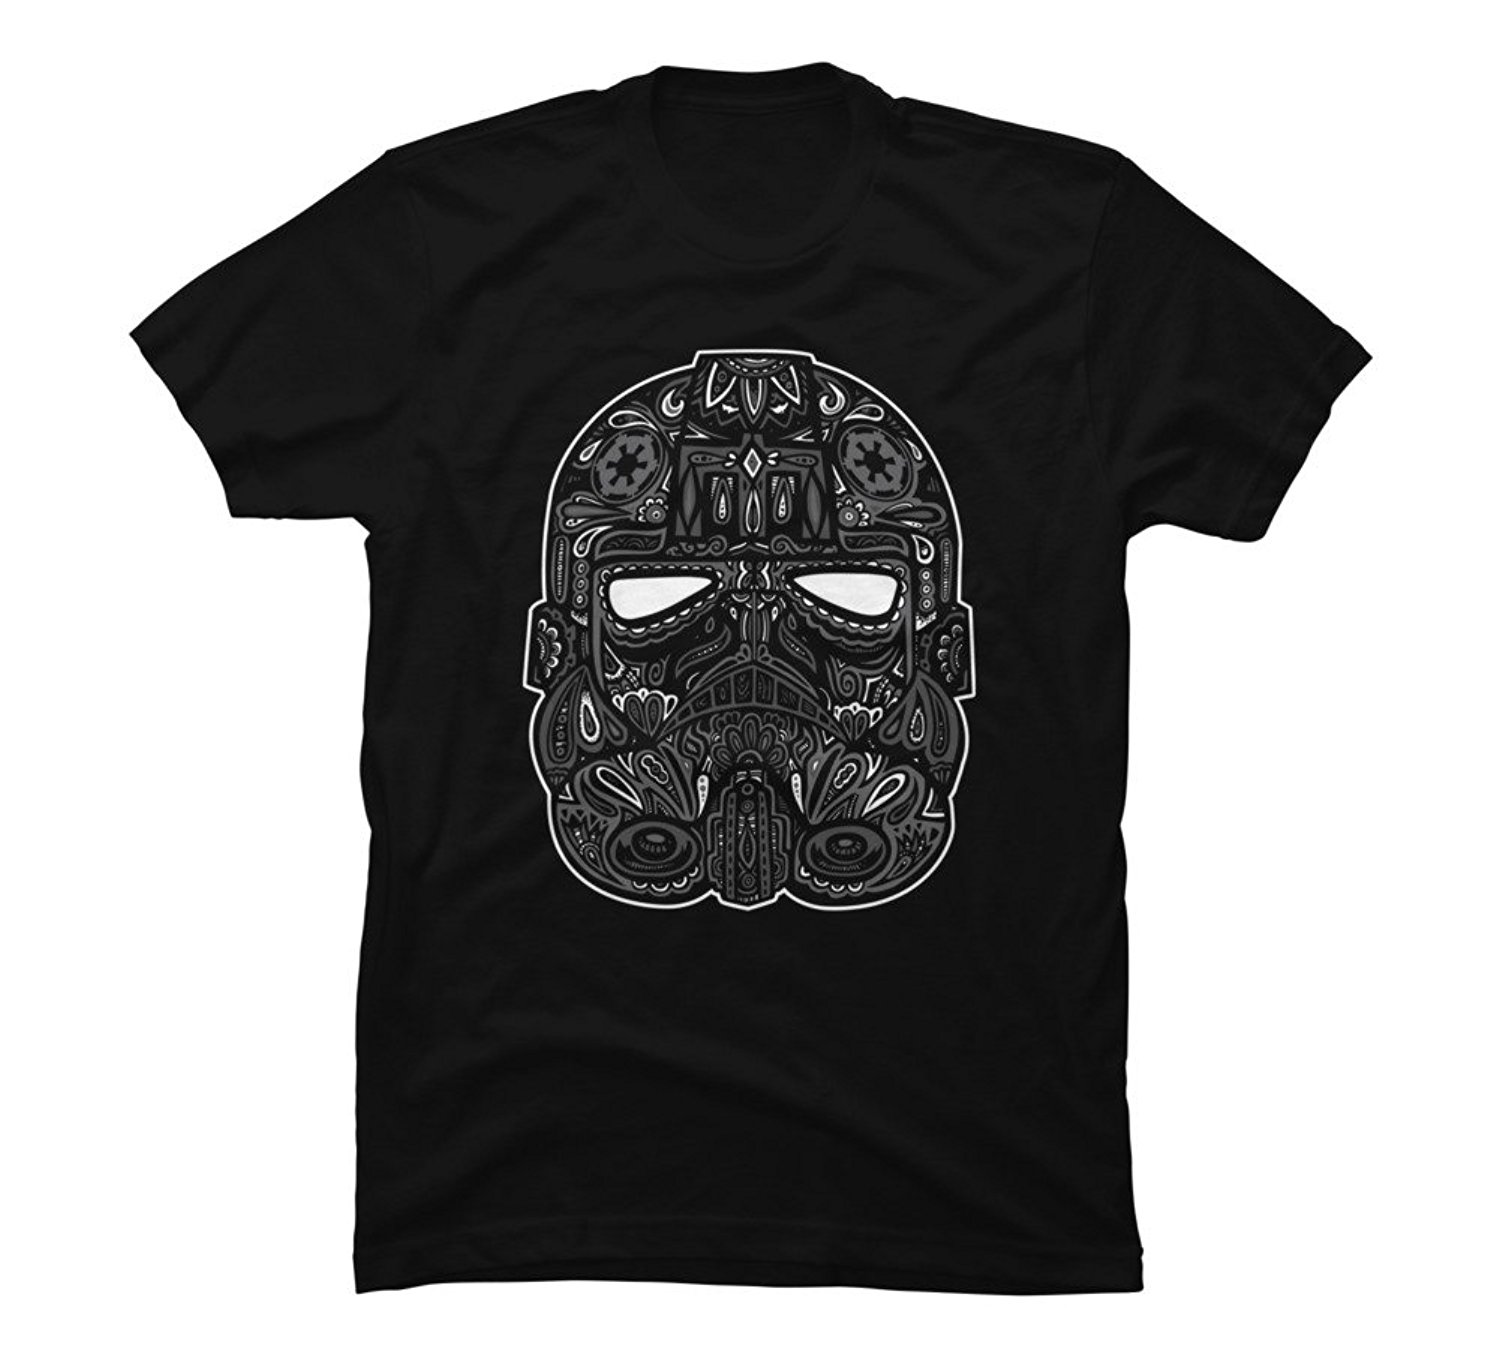 Tie Fighter Calavera Men's Graphic T Shirts - Design By Humans Fashion Style Cotton T-Shirt Fashion Free Shipping Black